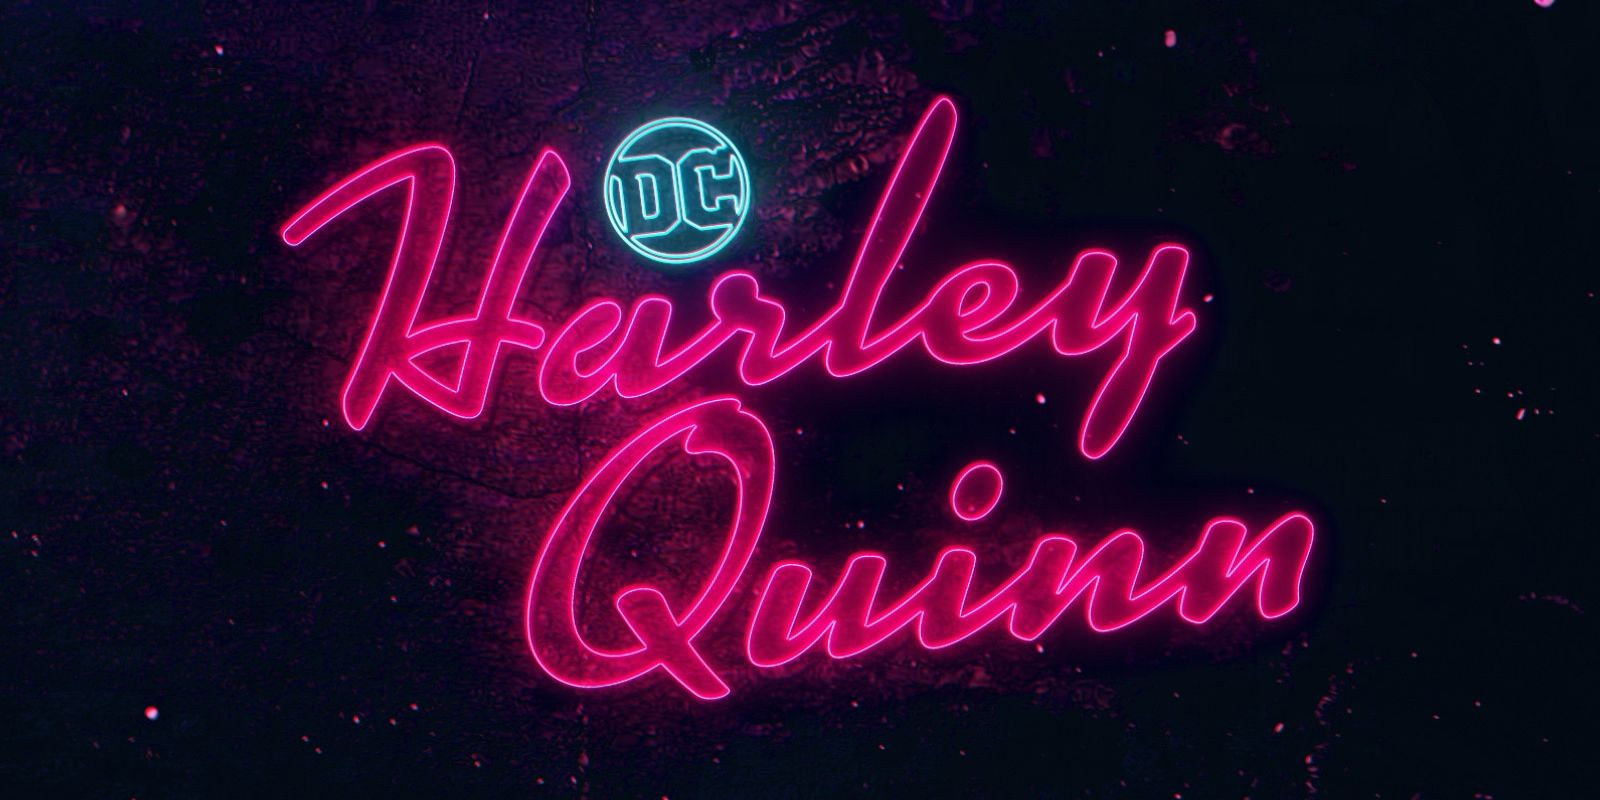 Harley Quinn Does The Floss Dance in New Promo for the DC Universe Series